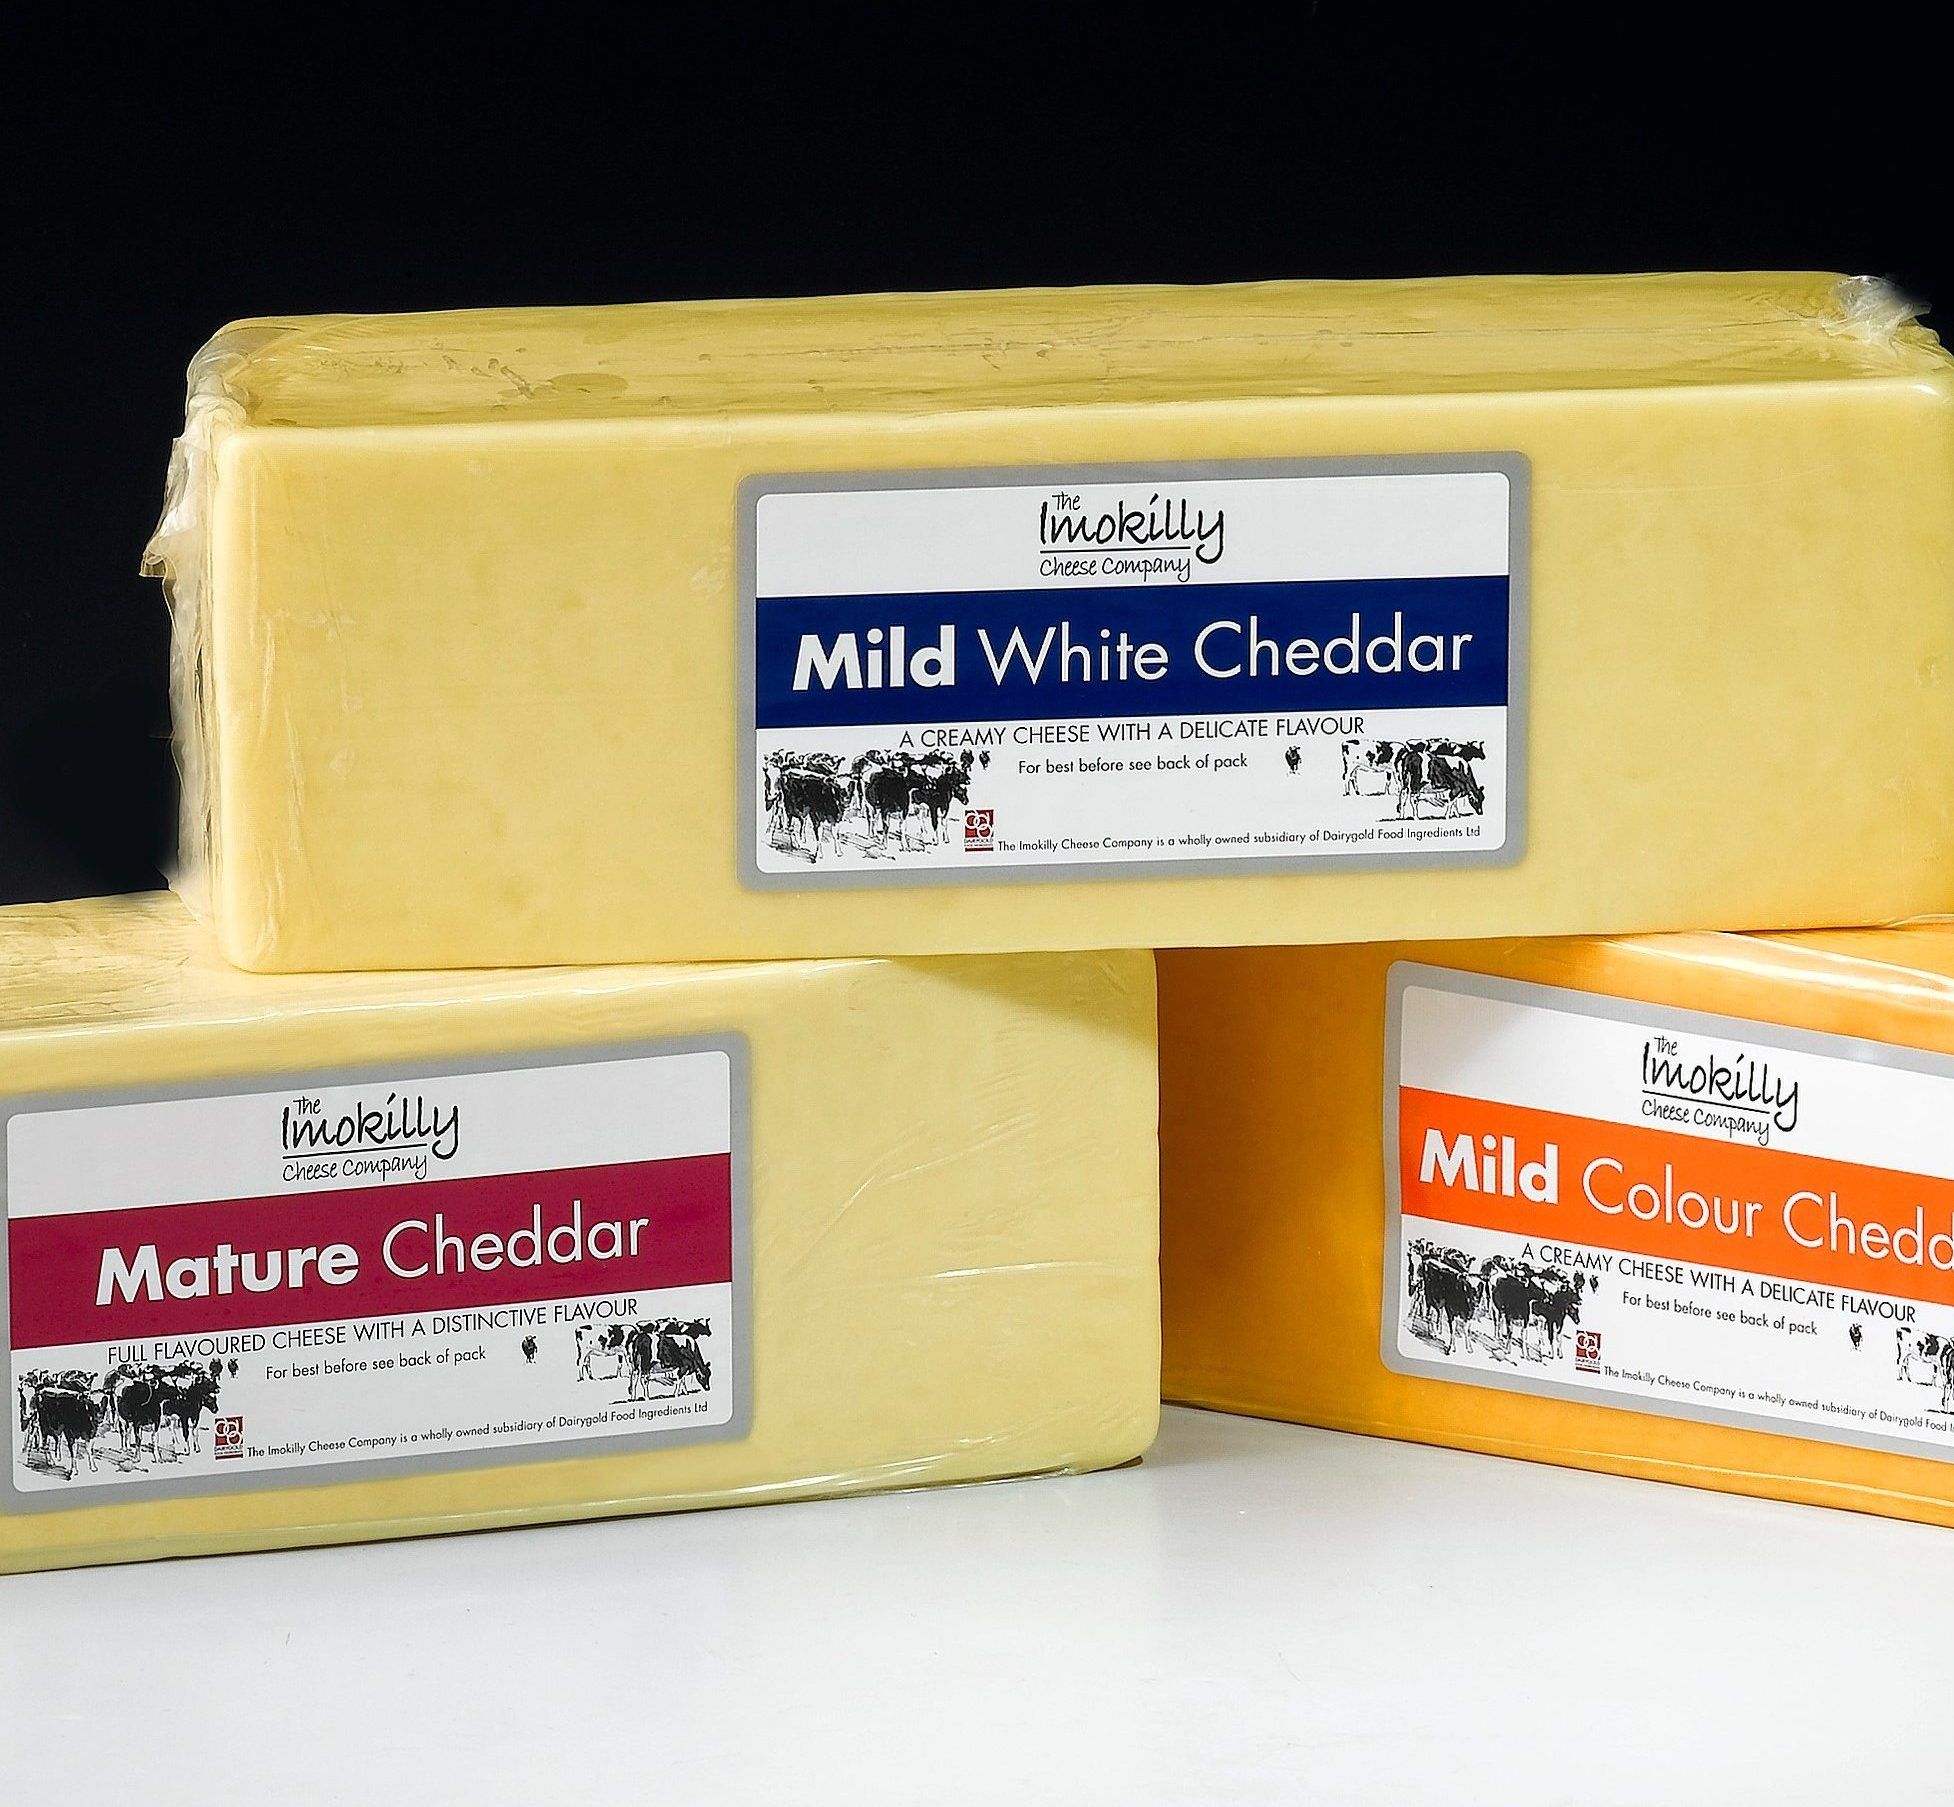 The Imokilly Cheese Company